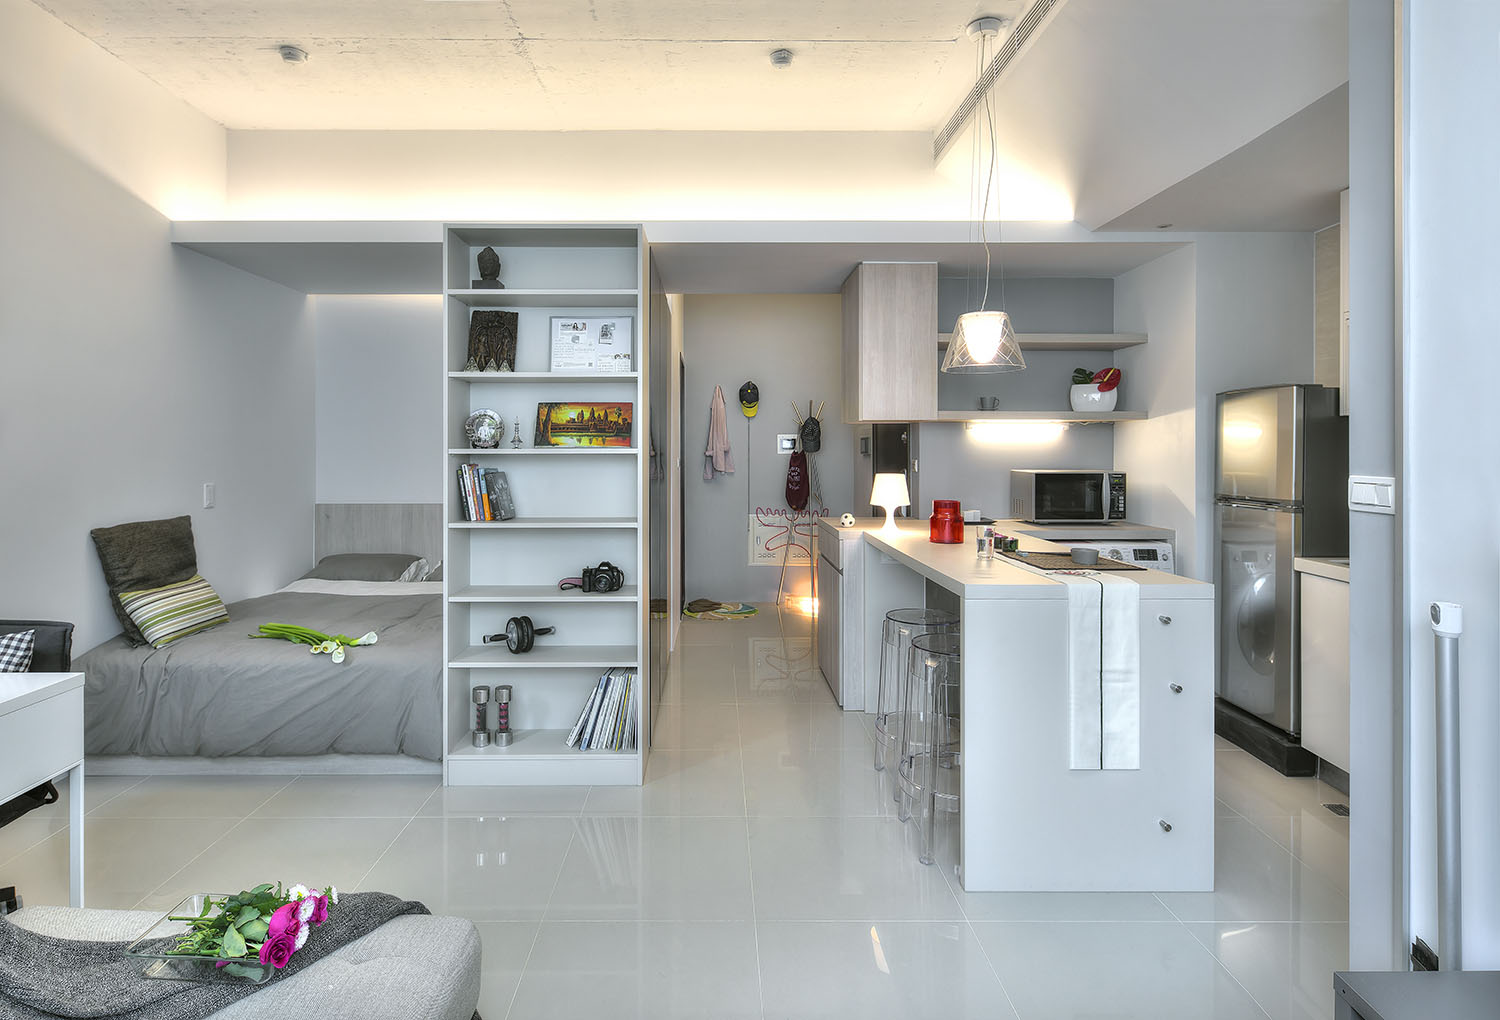 Small taipei studio apartment with clever efficient design for Modern studio apartment ideas